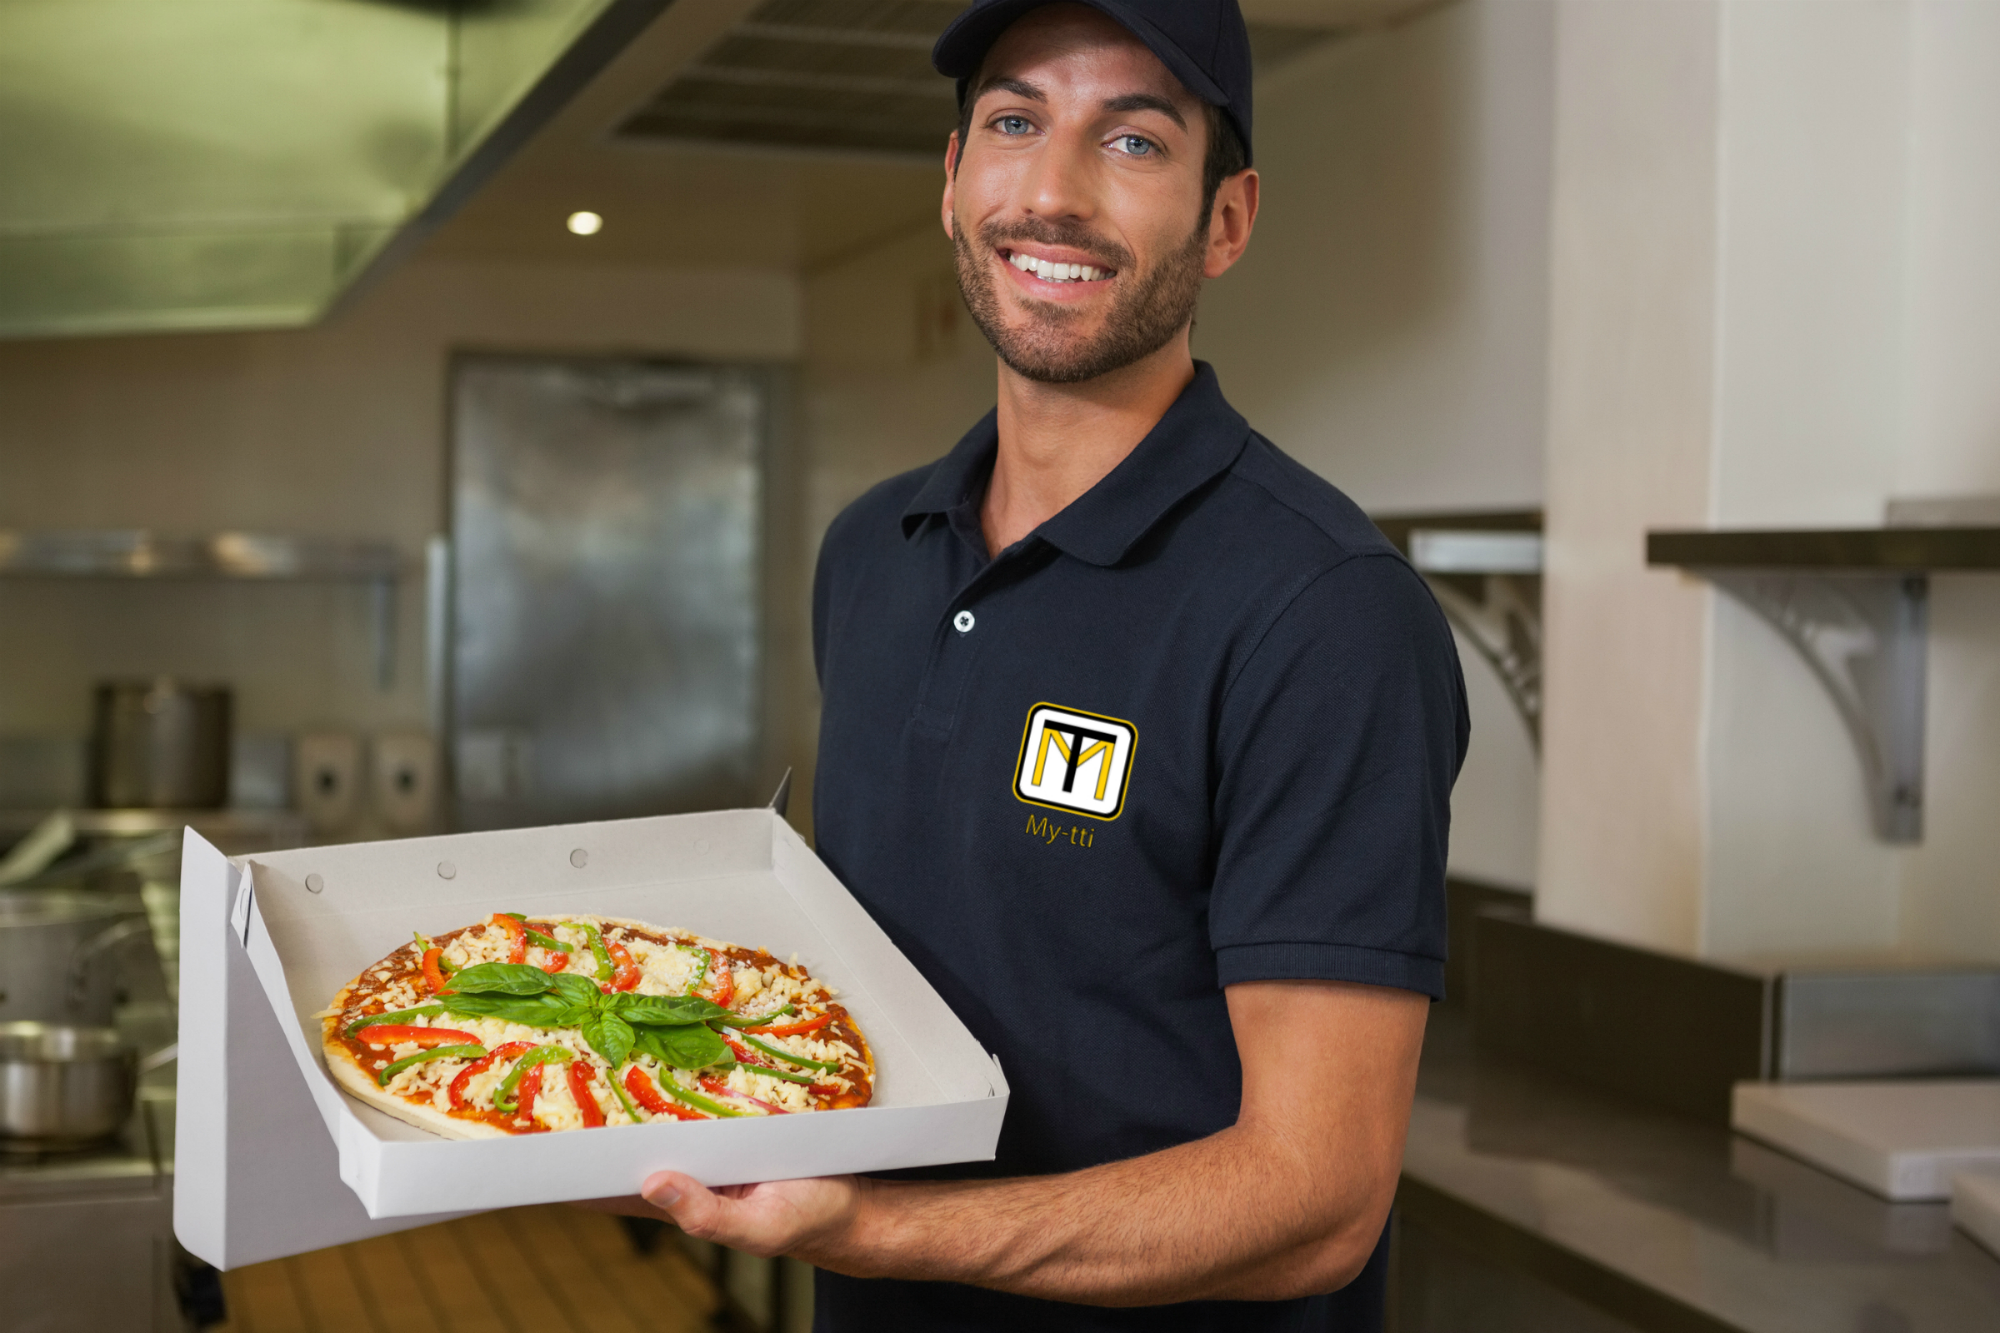 My-tti food delivery guy